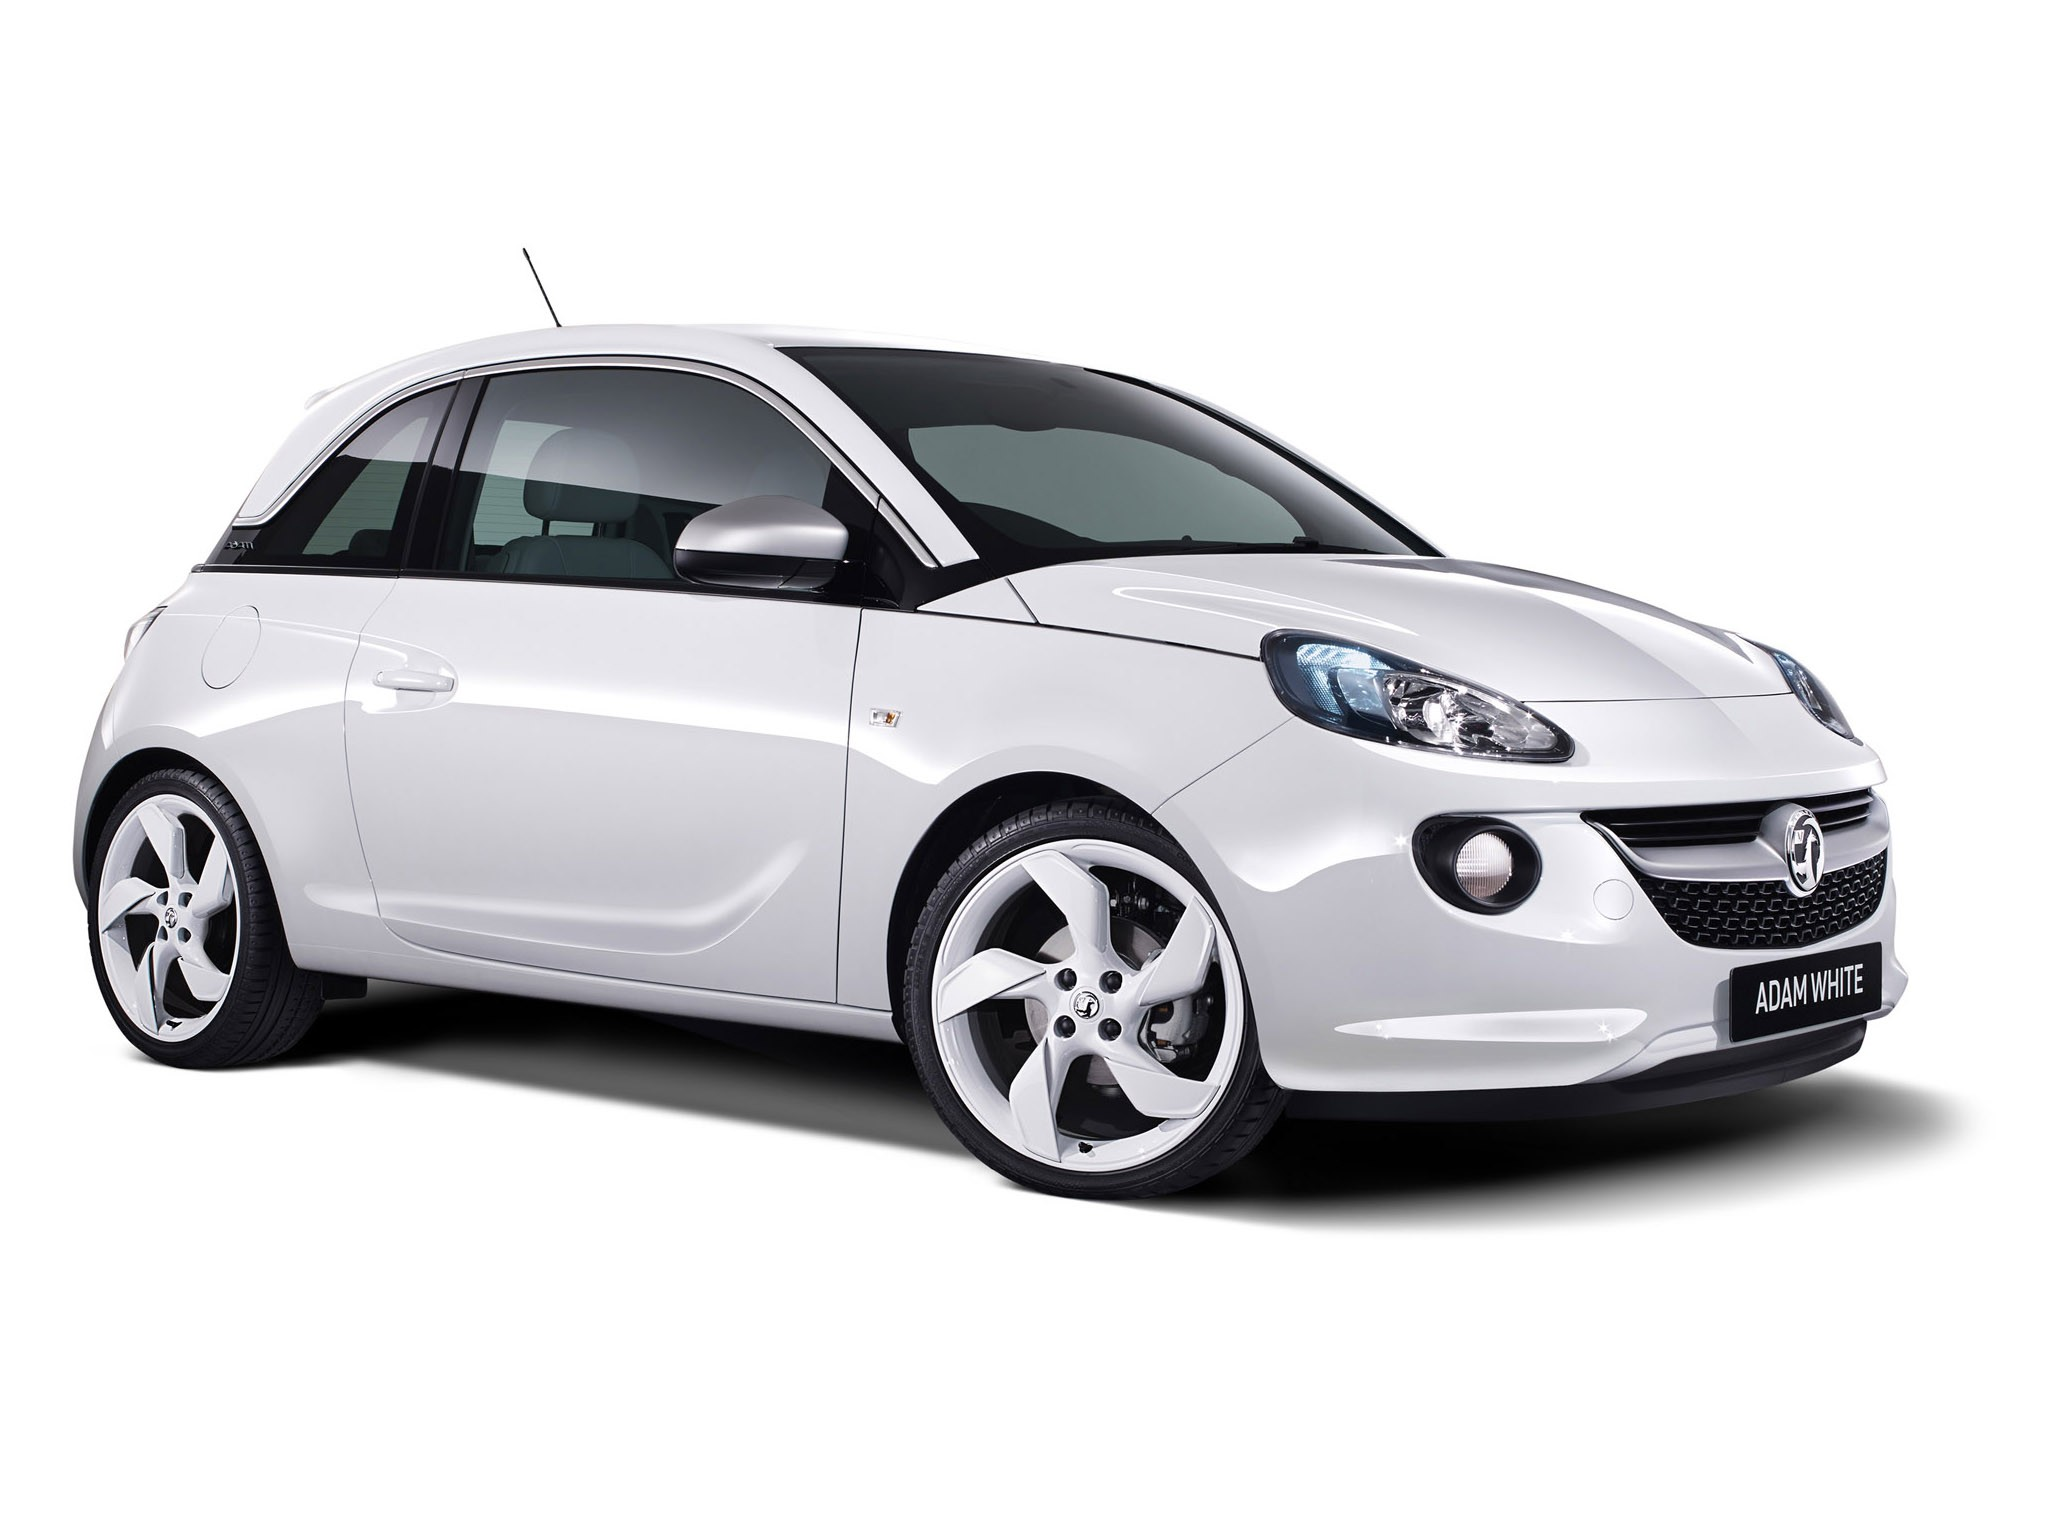 2014 Vauxhall Adam White Edition